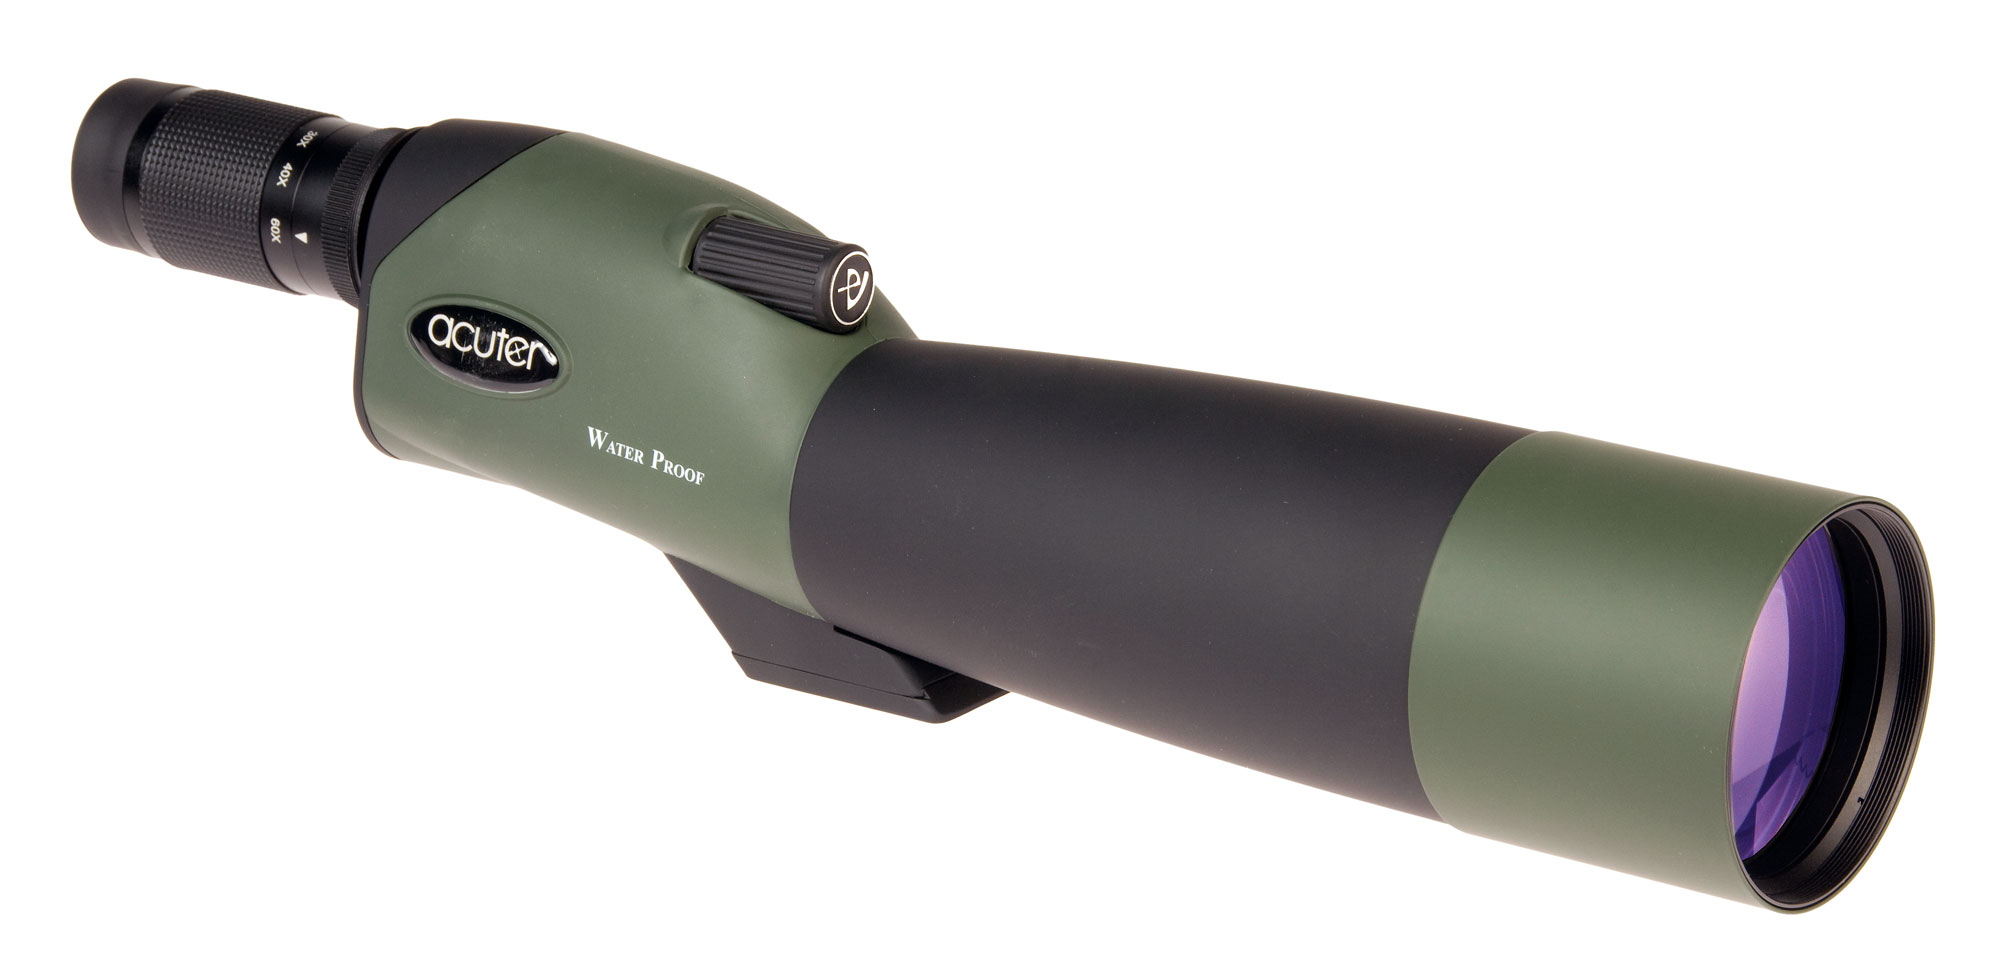 Acuter NatureClose ST80B 20-60x80 Waterproof Straight Spotting Scope